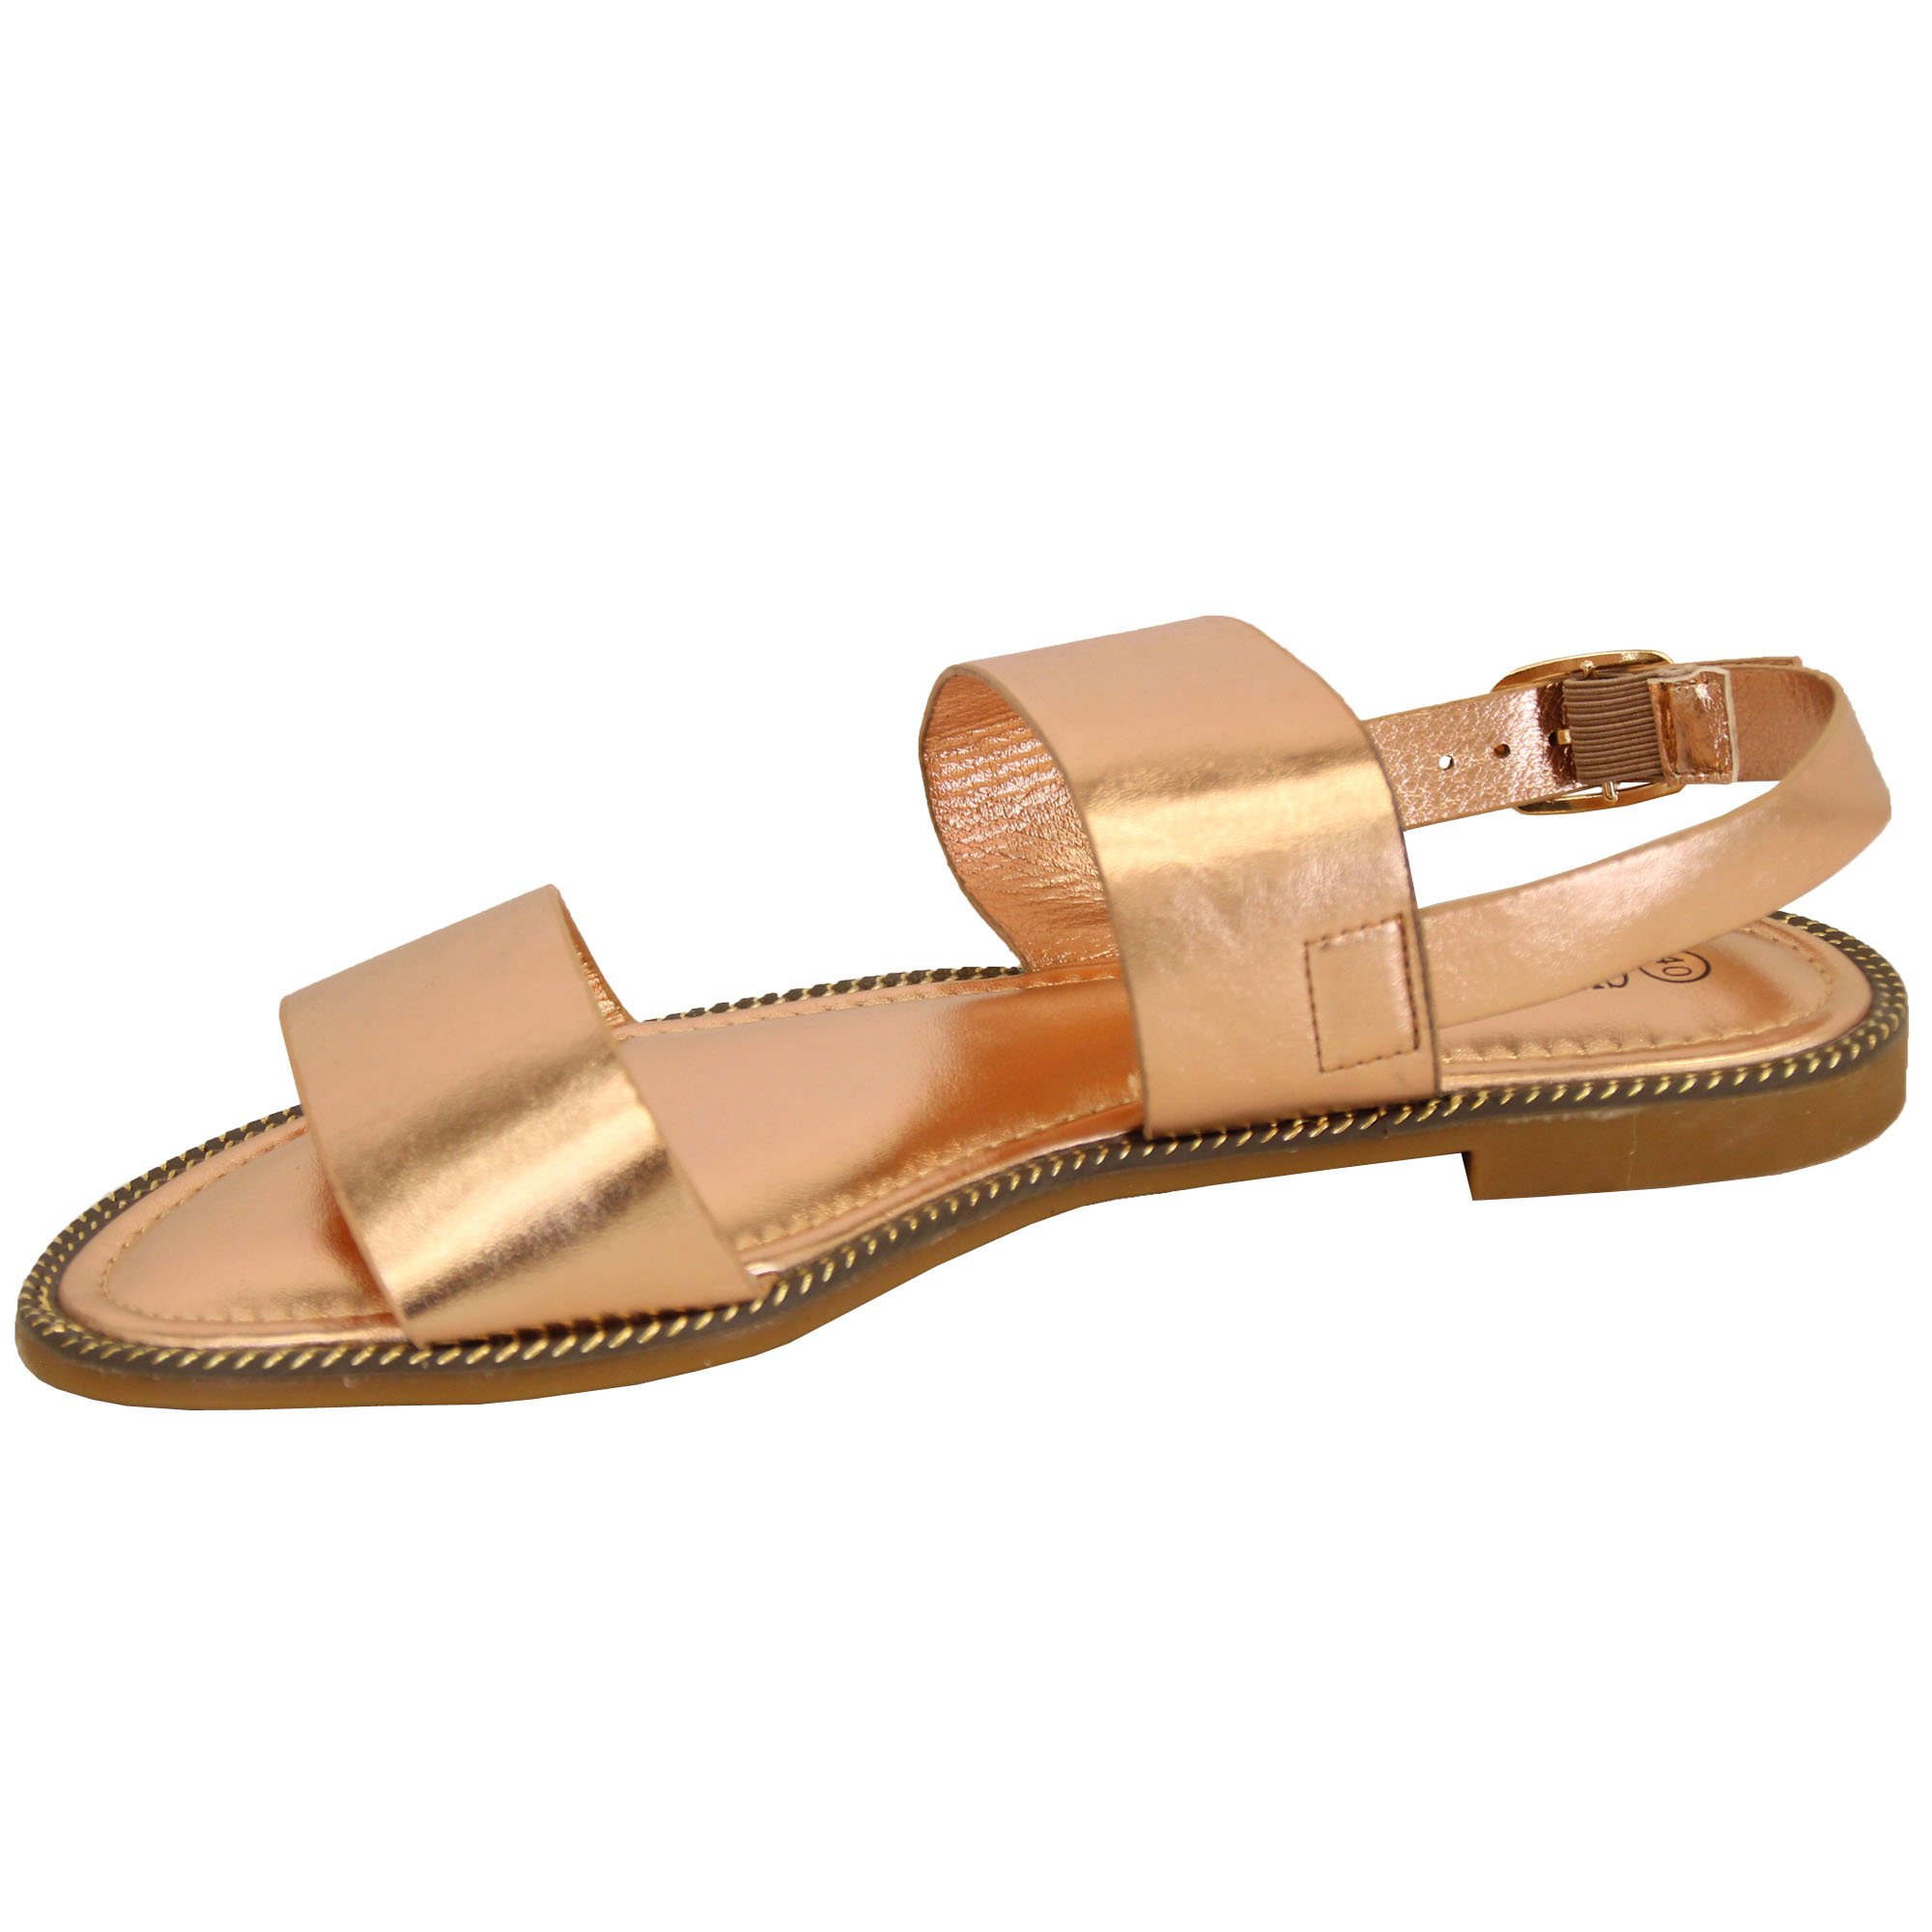 Ladies-Flat-Sandals-Slip-On-Womens-Open-Toe-Shoes-Buckle-Fashion-Wedding-Summer thumbnail 7